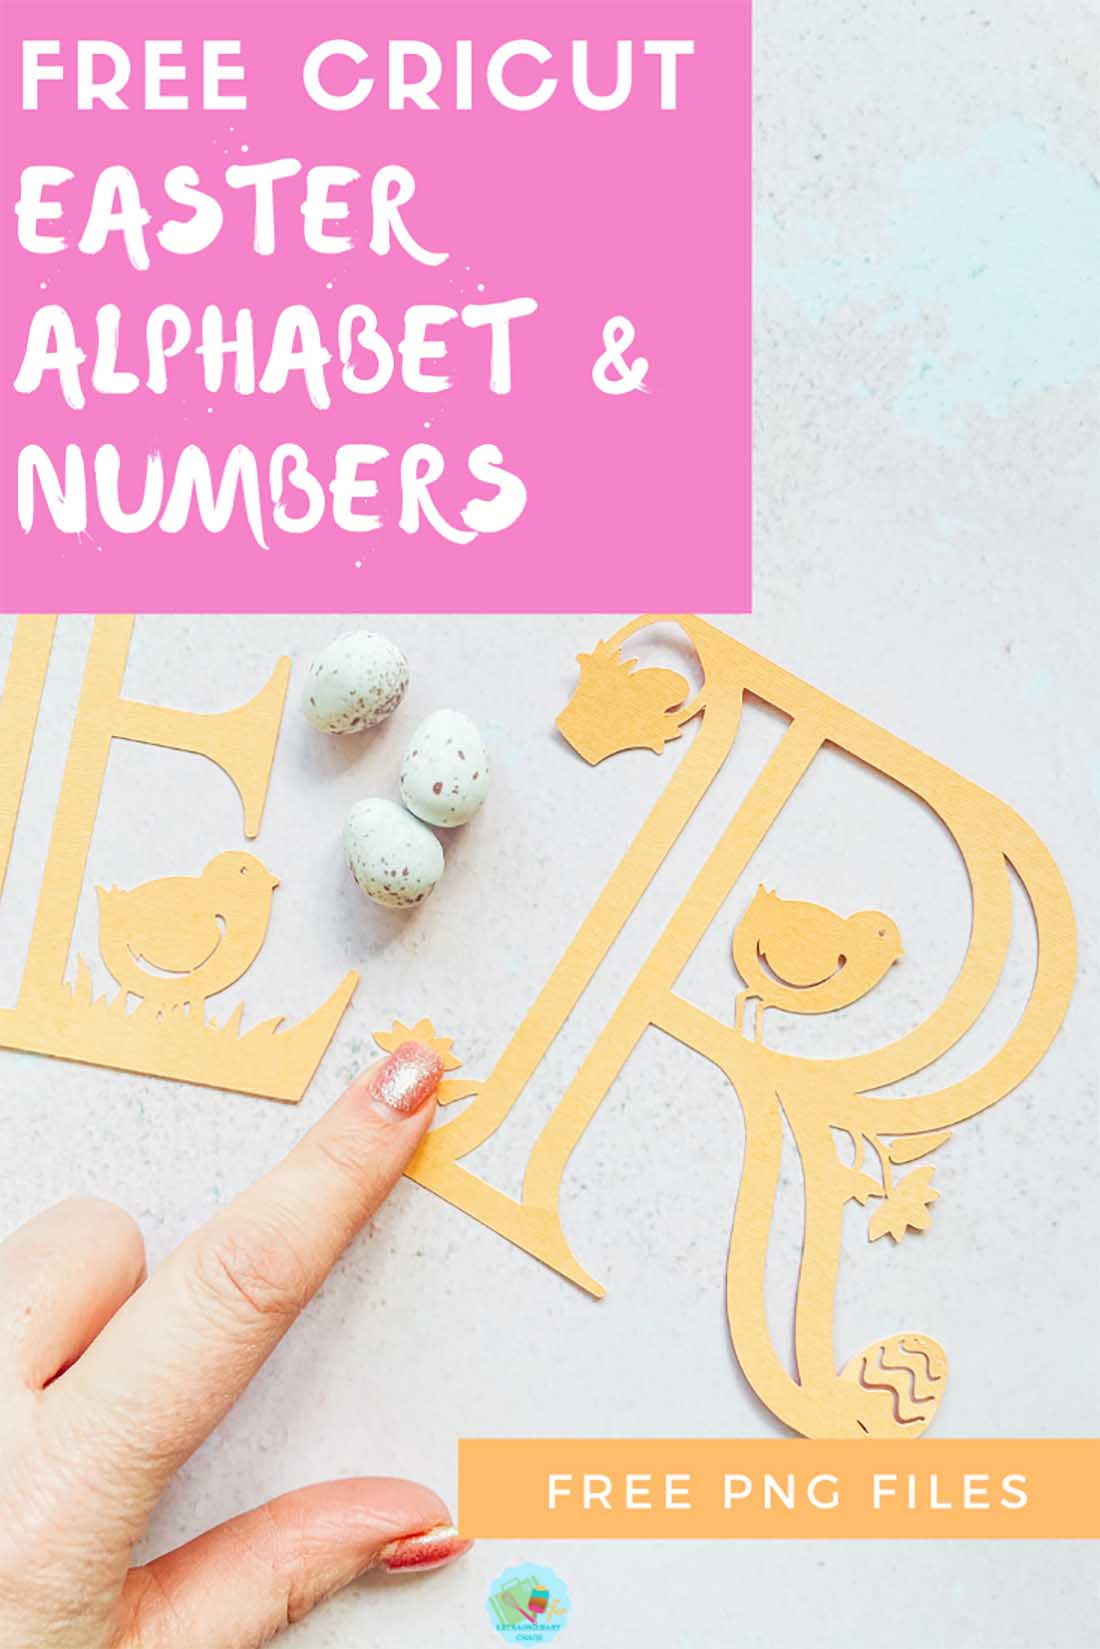 Free Cricut Easter Alphabet and Number Set for using with paper and vinyl